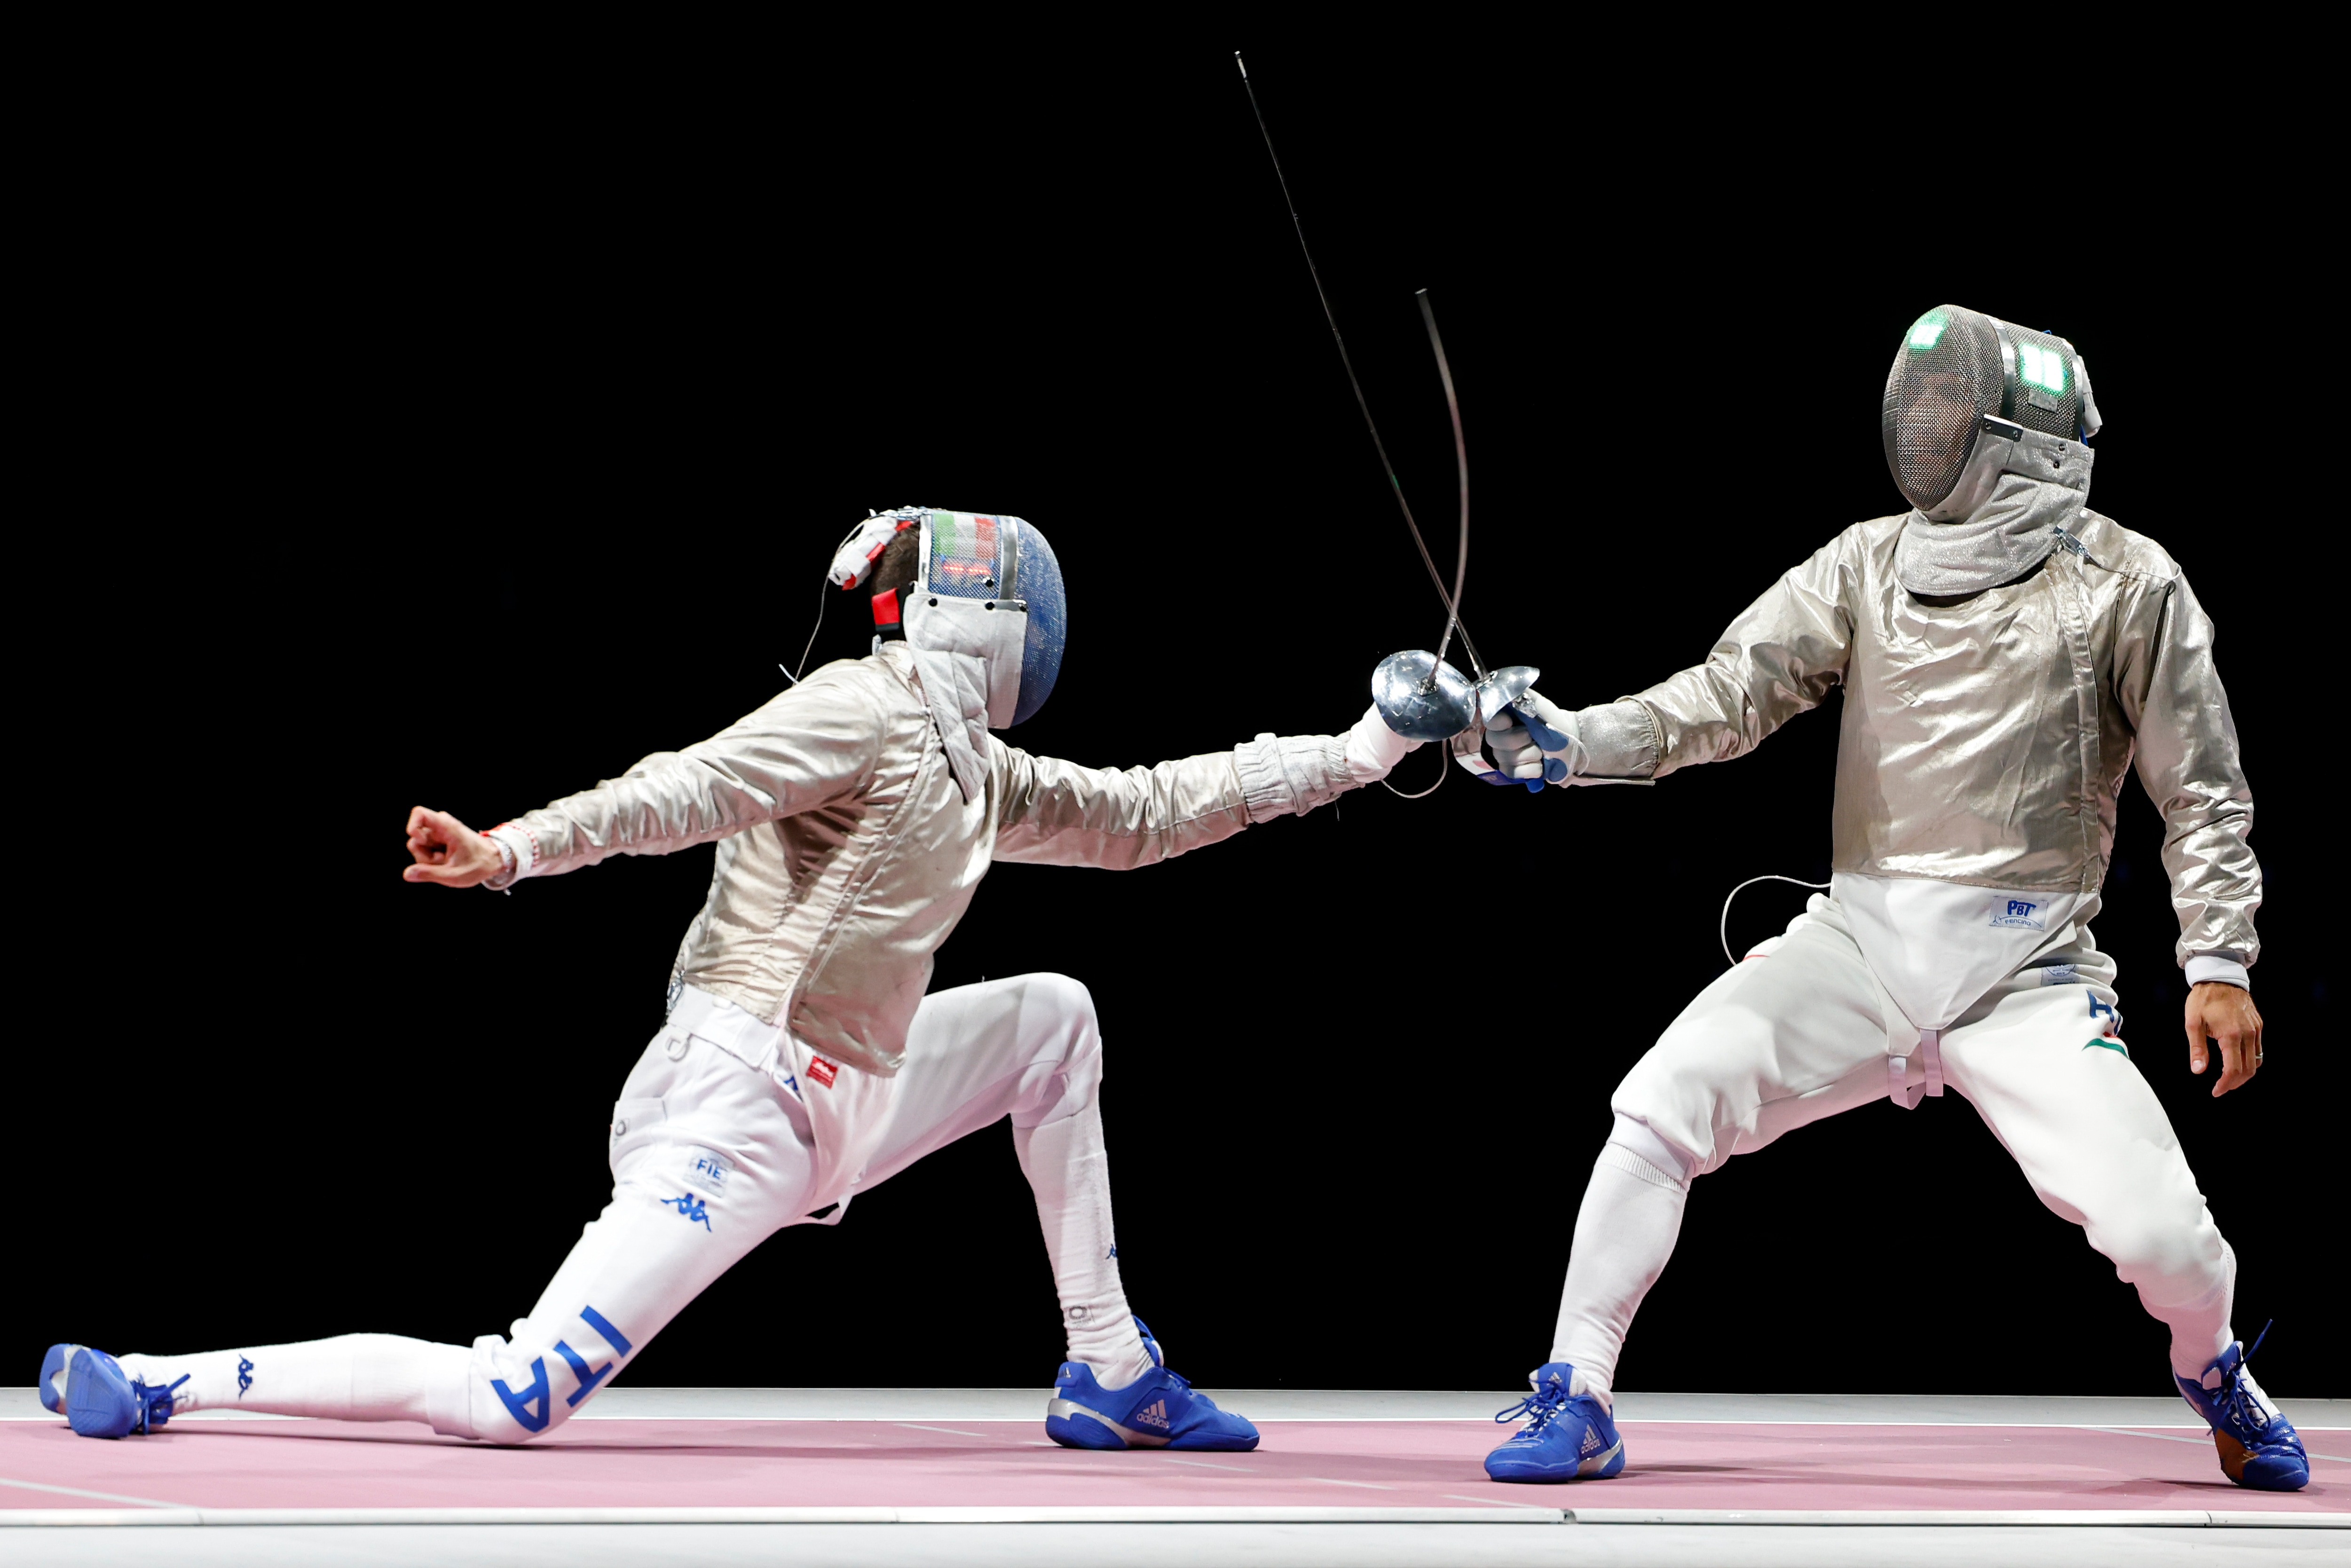 Aron Szilagyi, Sun Yiwen make history with wins in gold-medal fencing matches (credit: Getty...